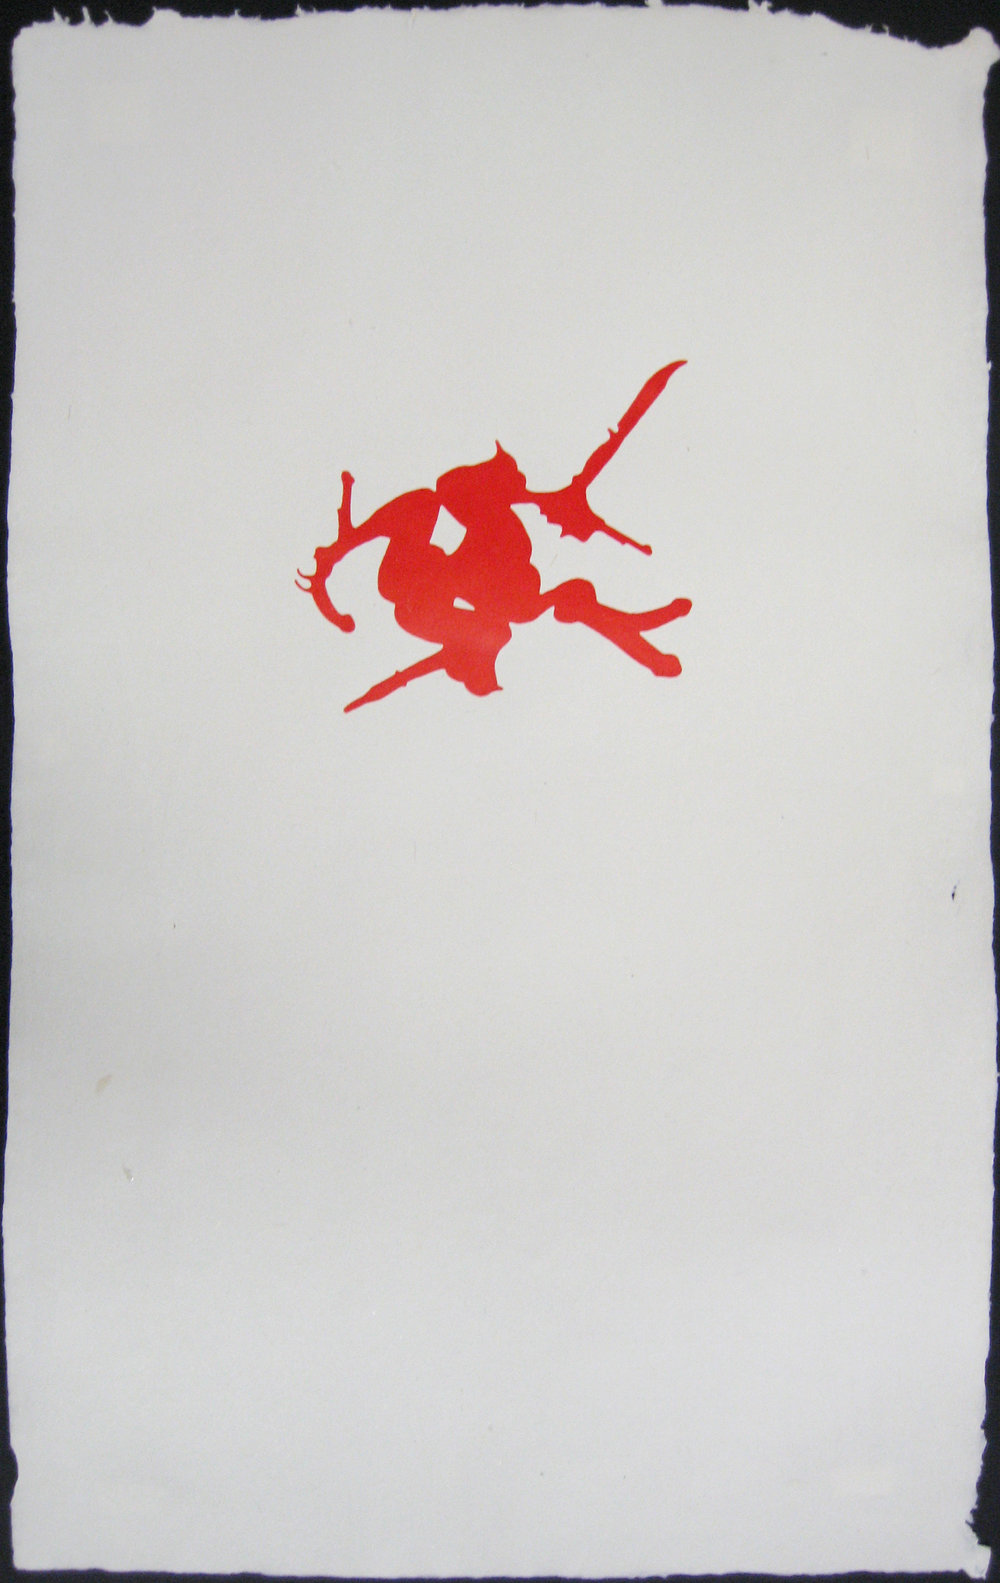 spinnersspinning-red-2-of-5-by-anna-tsantir-2009_5346787432_o.jpg